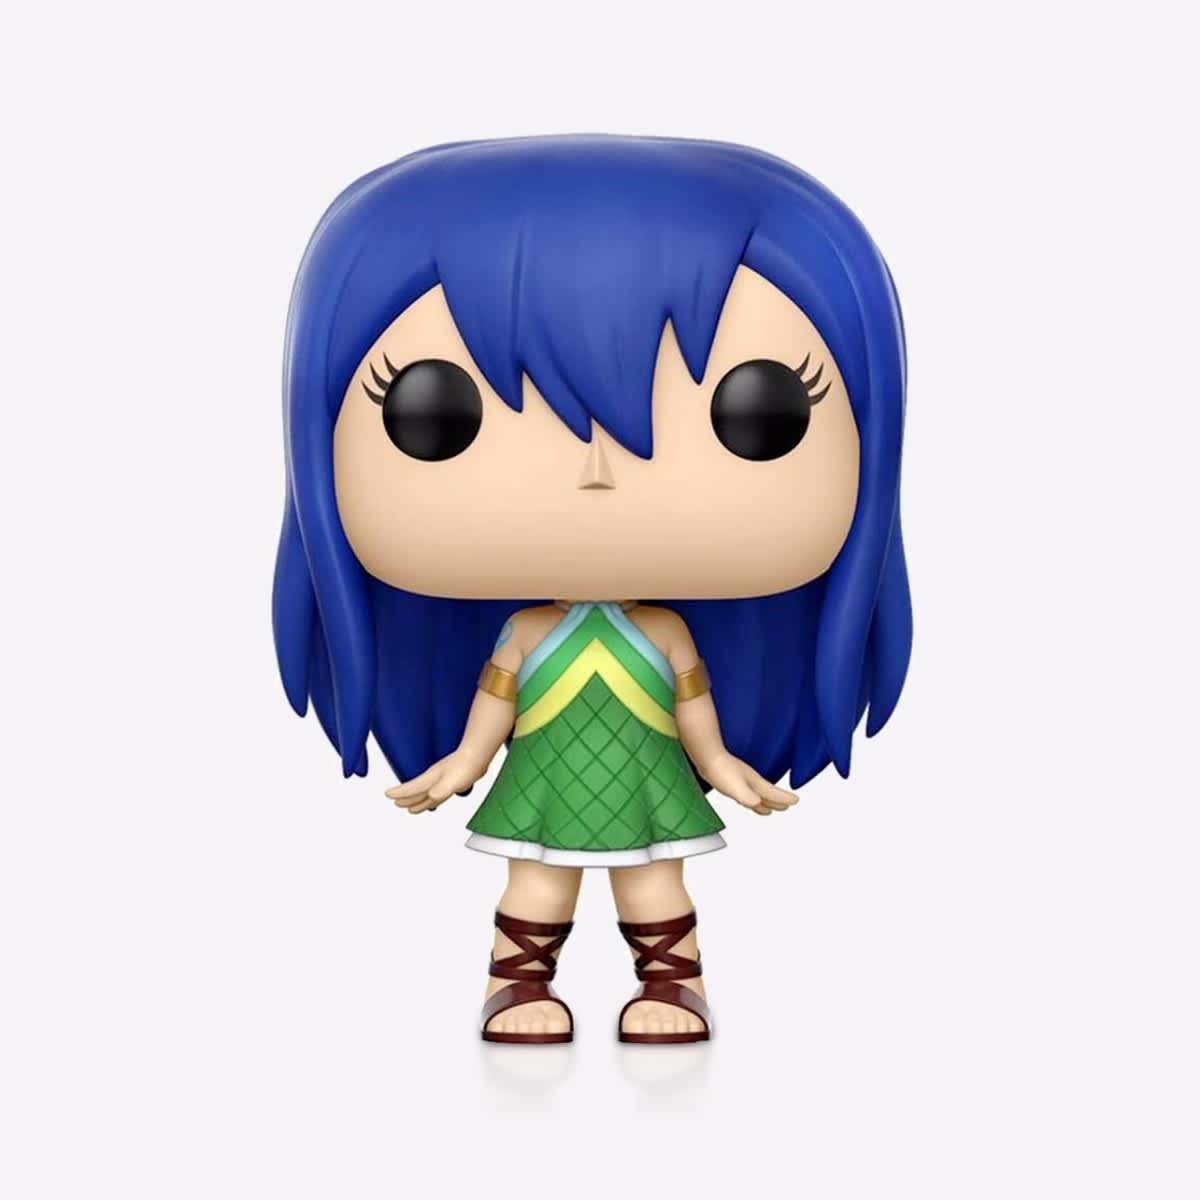 Funko Pop - Wendy Marvell Figures & Collectibles